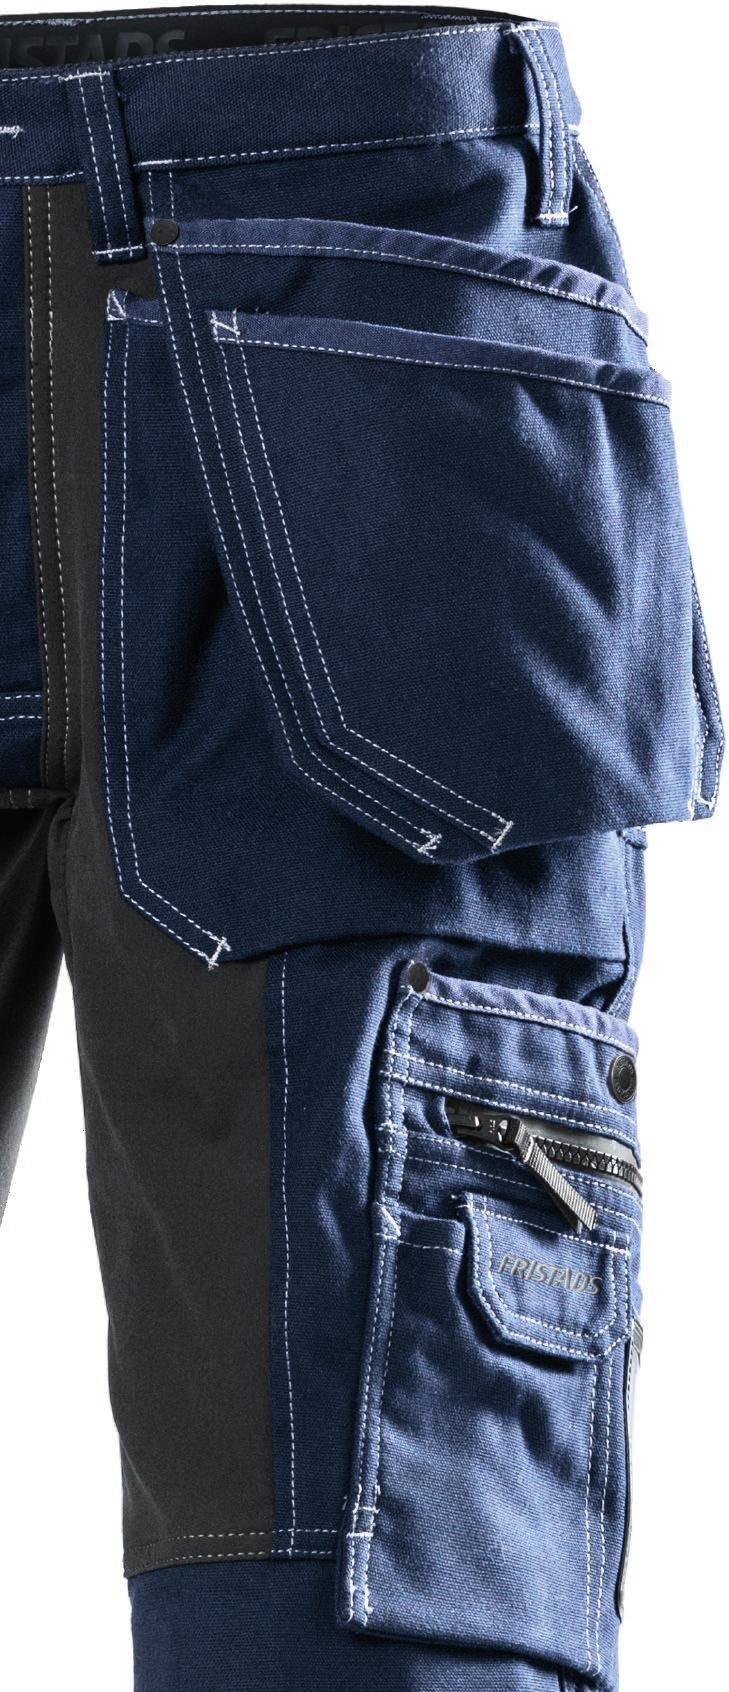 The back yoke and rear of the trousers, underneath the back pockets, are made of stretch material to give maximum mobility and comfort.